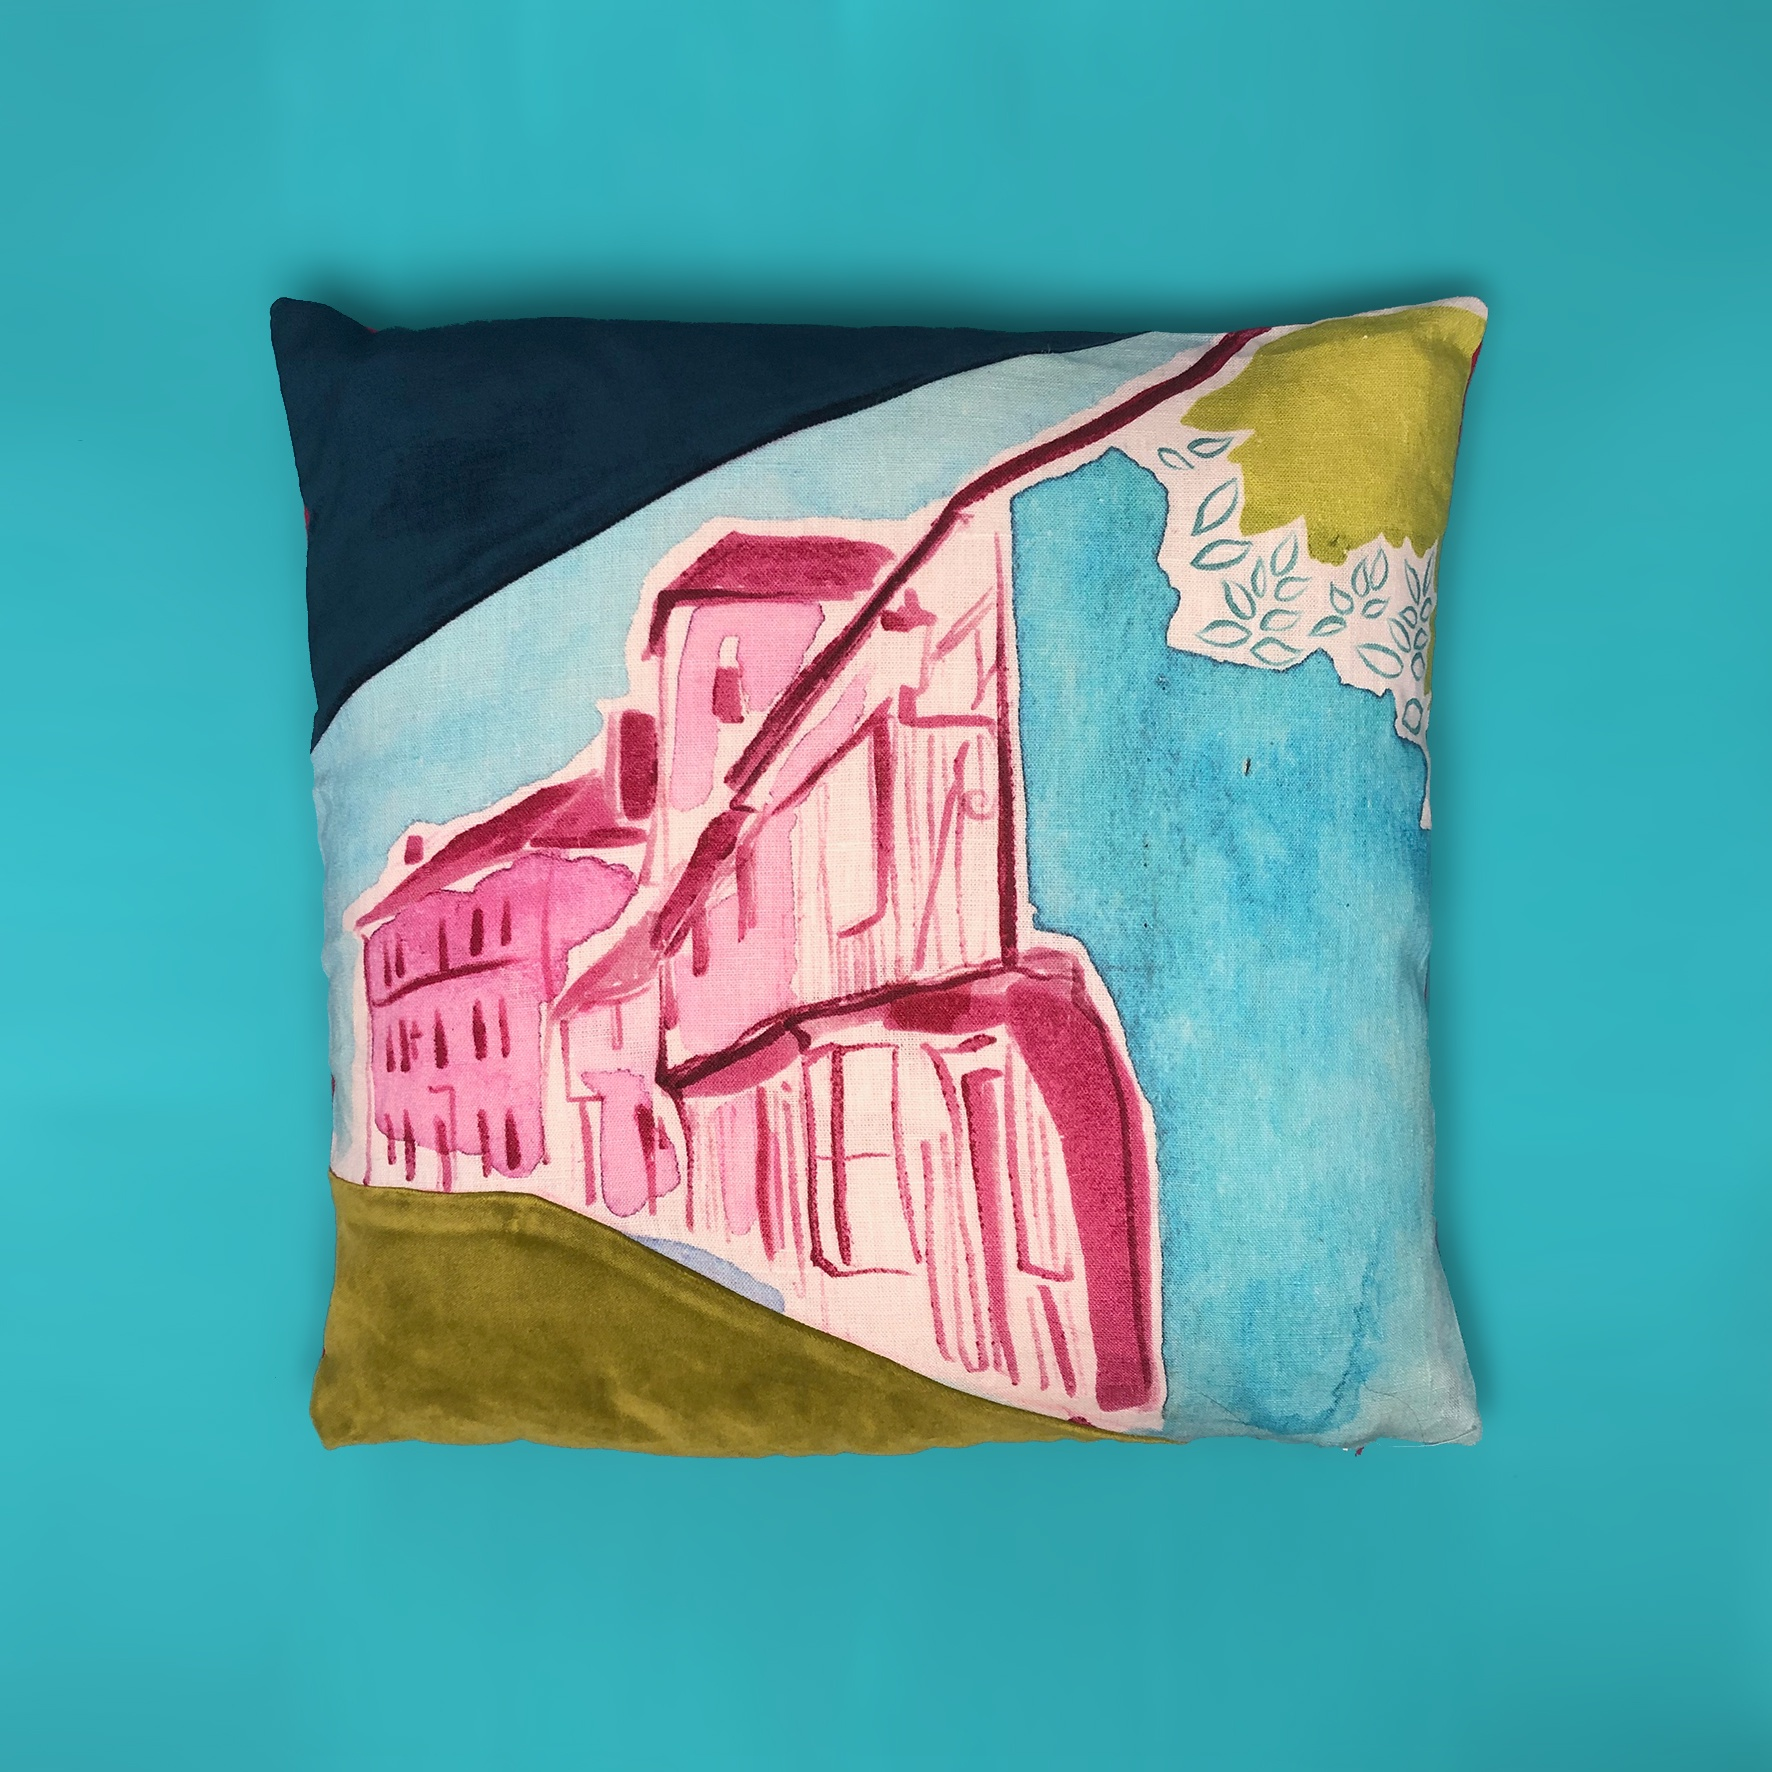 Myddylton Cushion